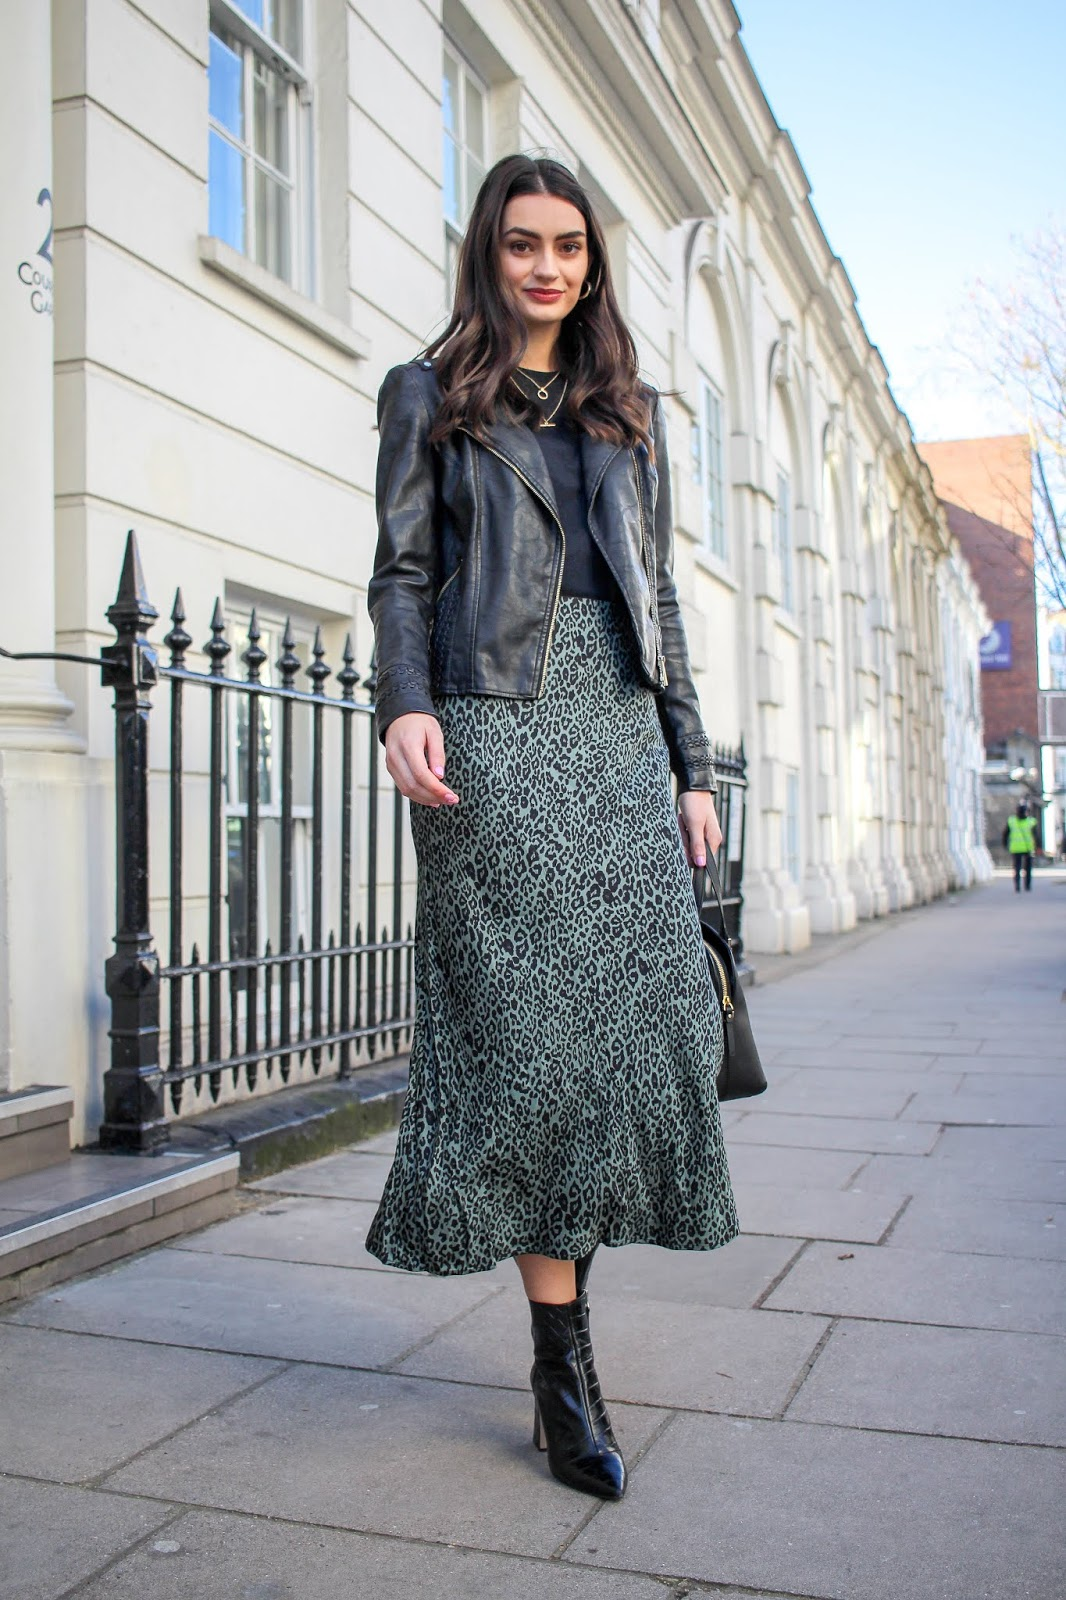 transitioning outfits from winter to spring peexo